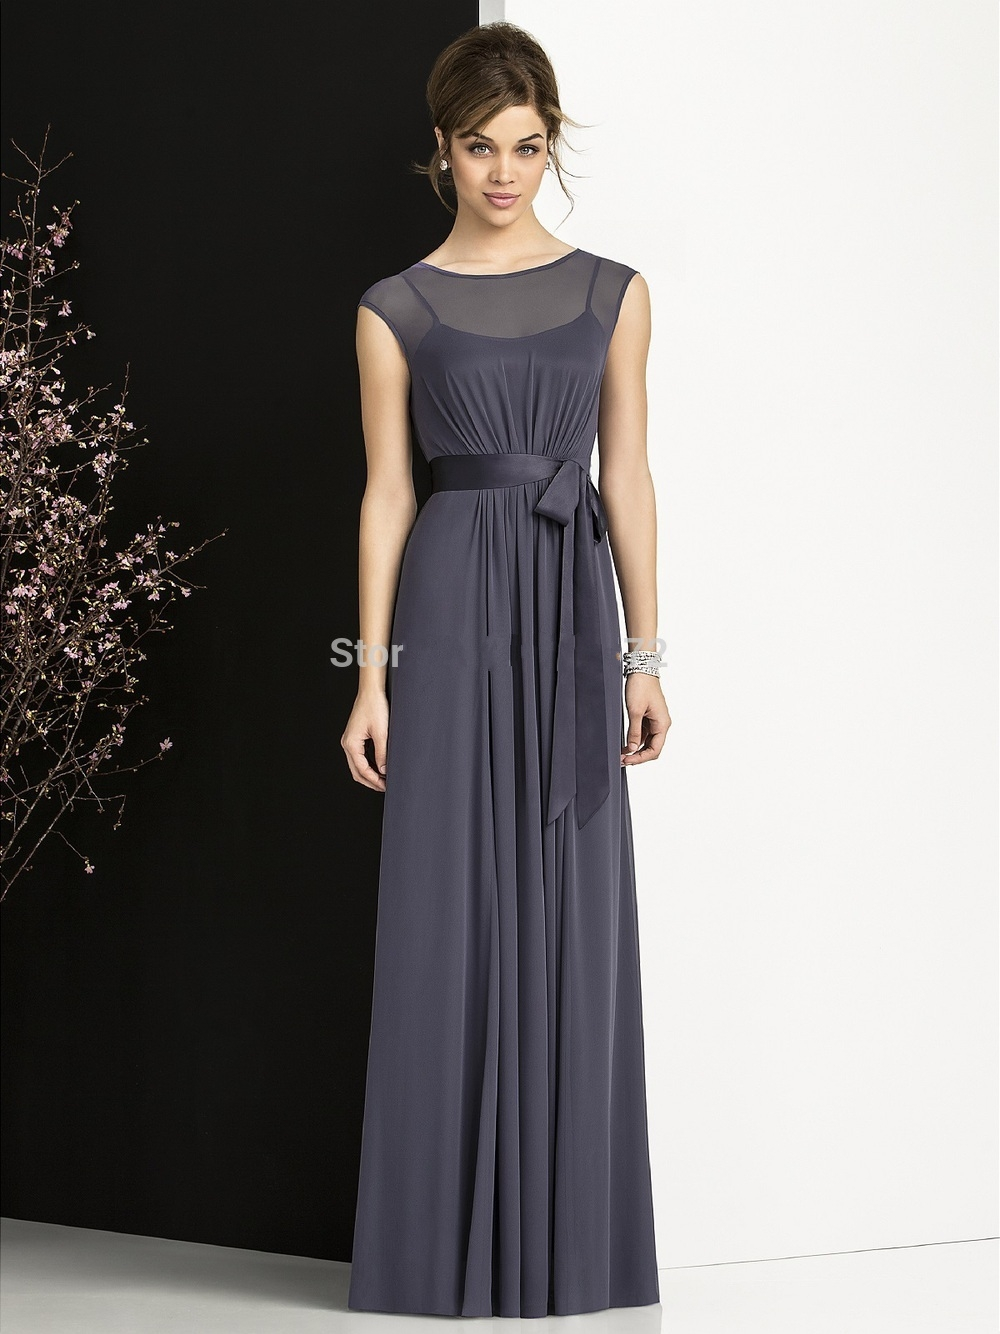 Popular bridesmaid dress collections buy cheap bridesmaid dress scoop inside belt straps bridesmaid dresses 2017 new collection cap sleeve chiffon long prom gown pleats ombrellifo Images